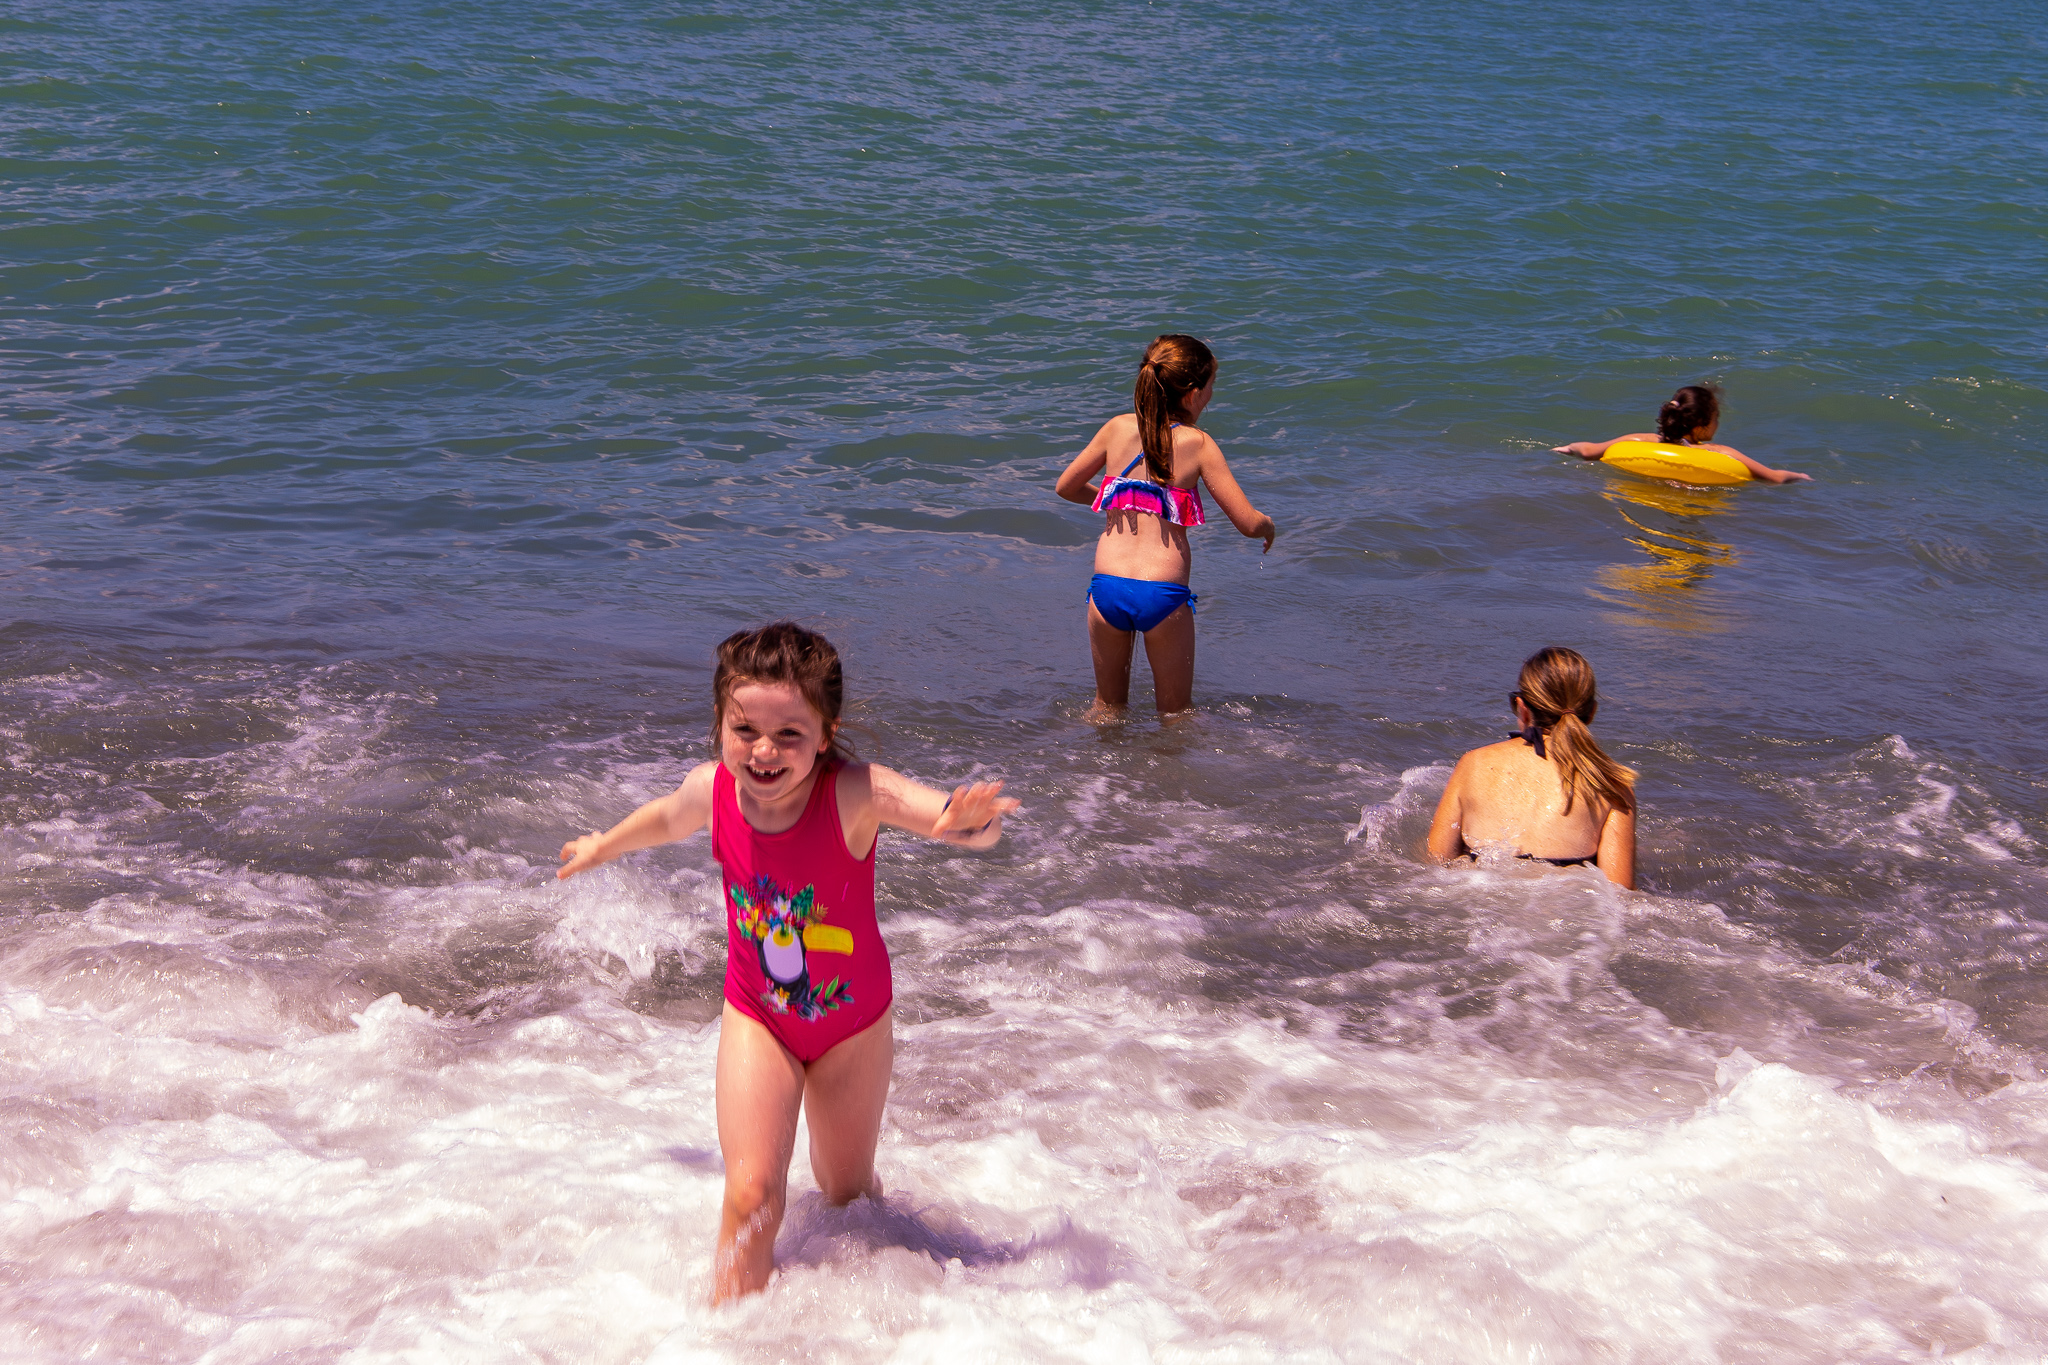 Kids, waves and water - always a sure hit